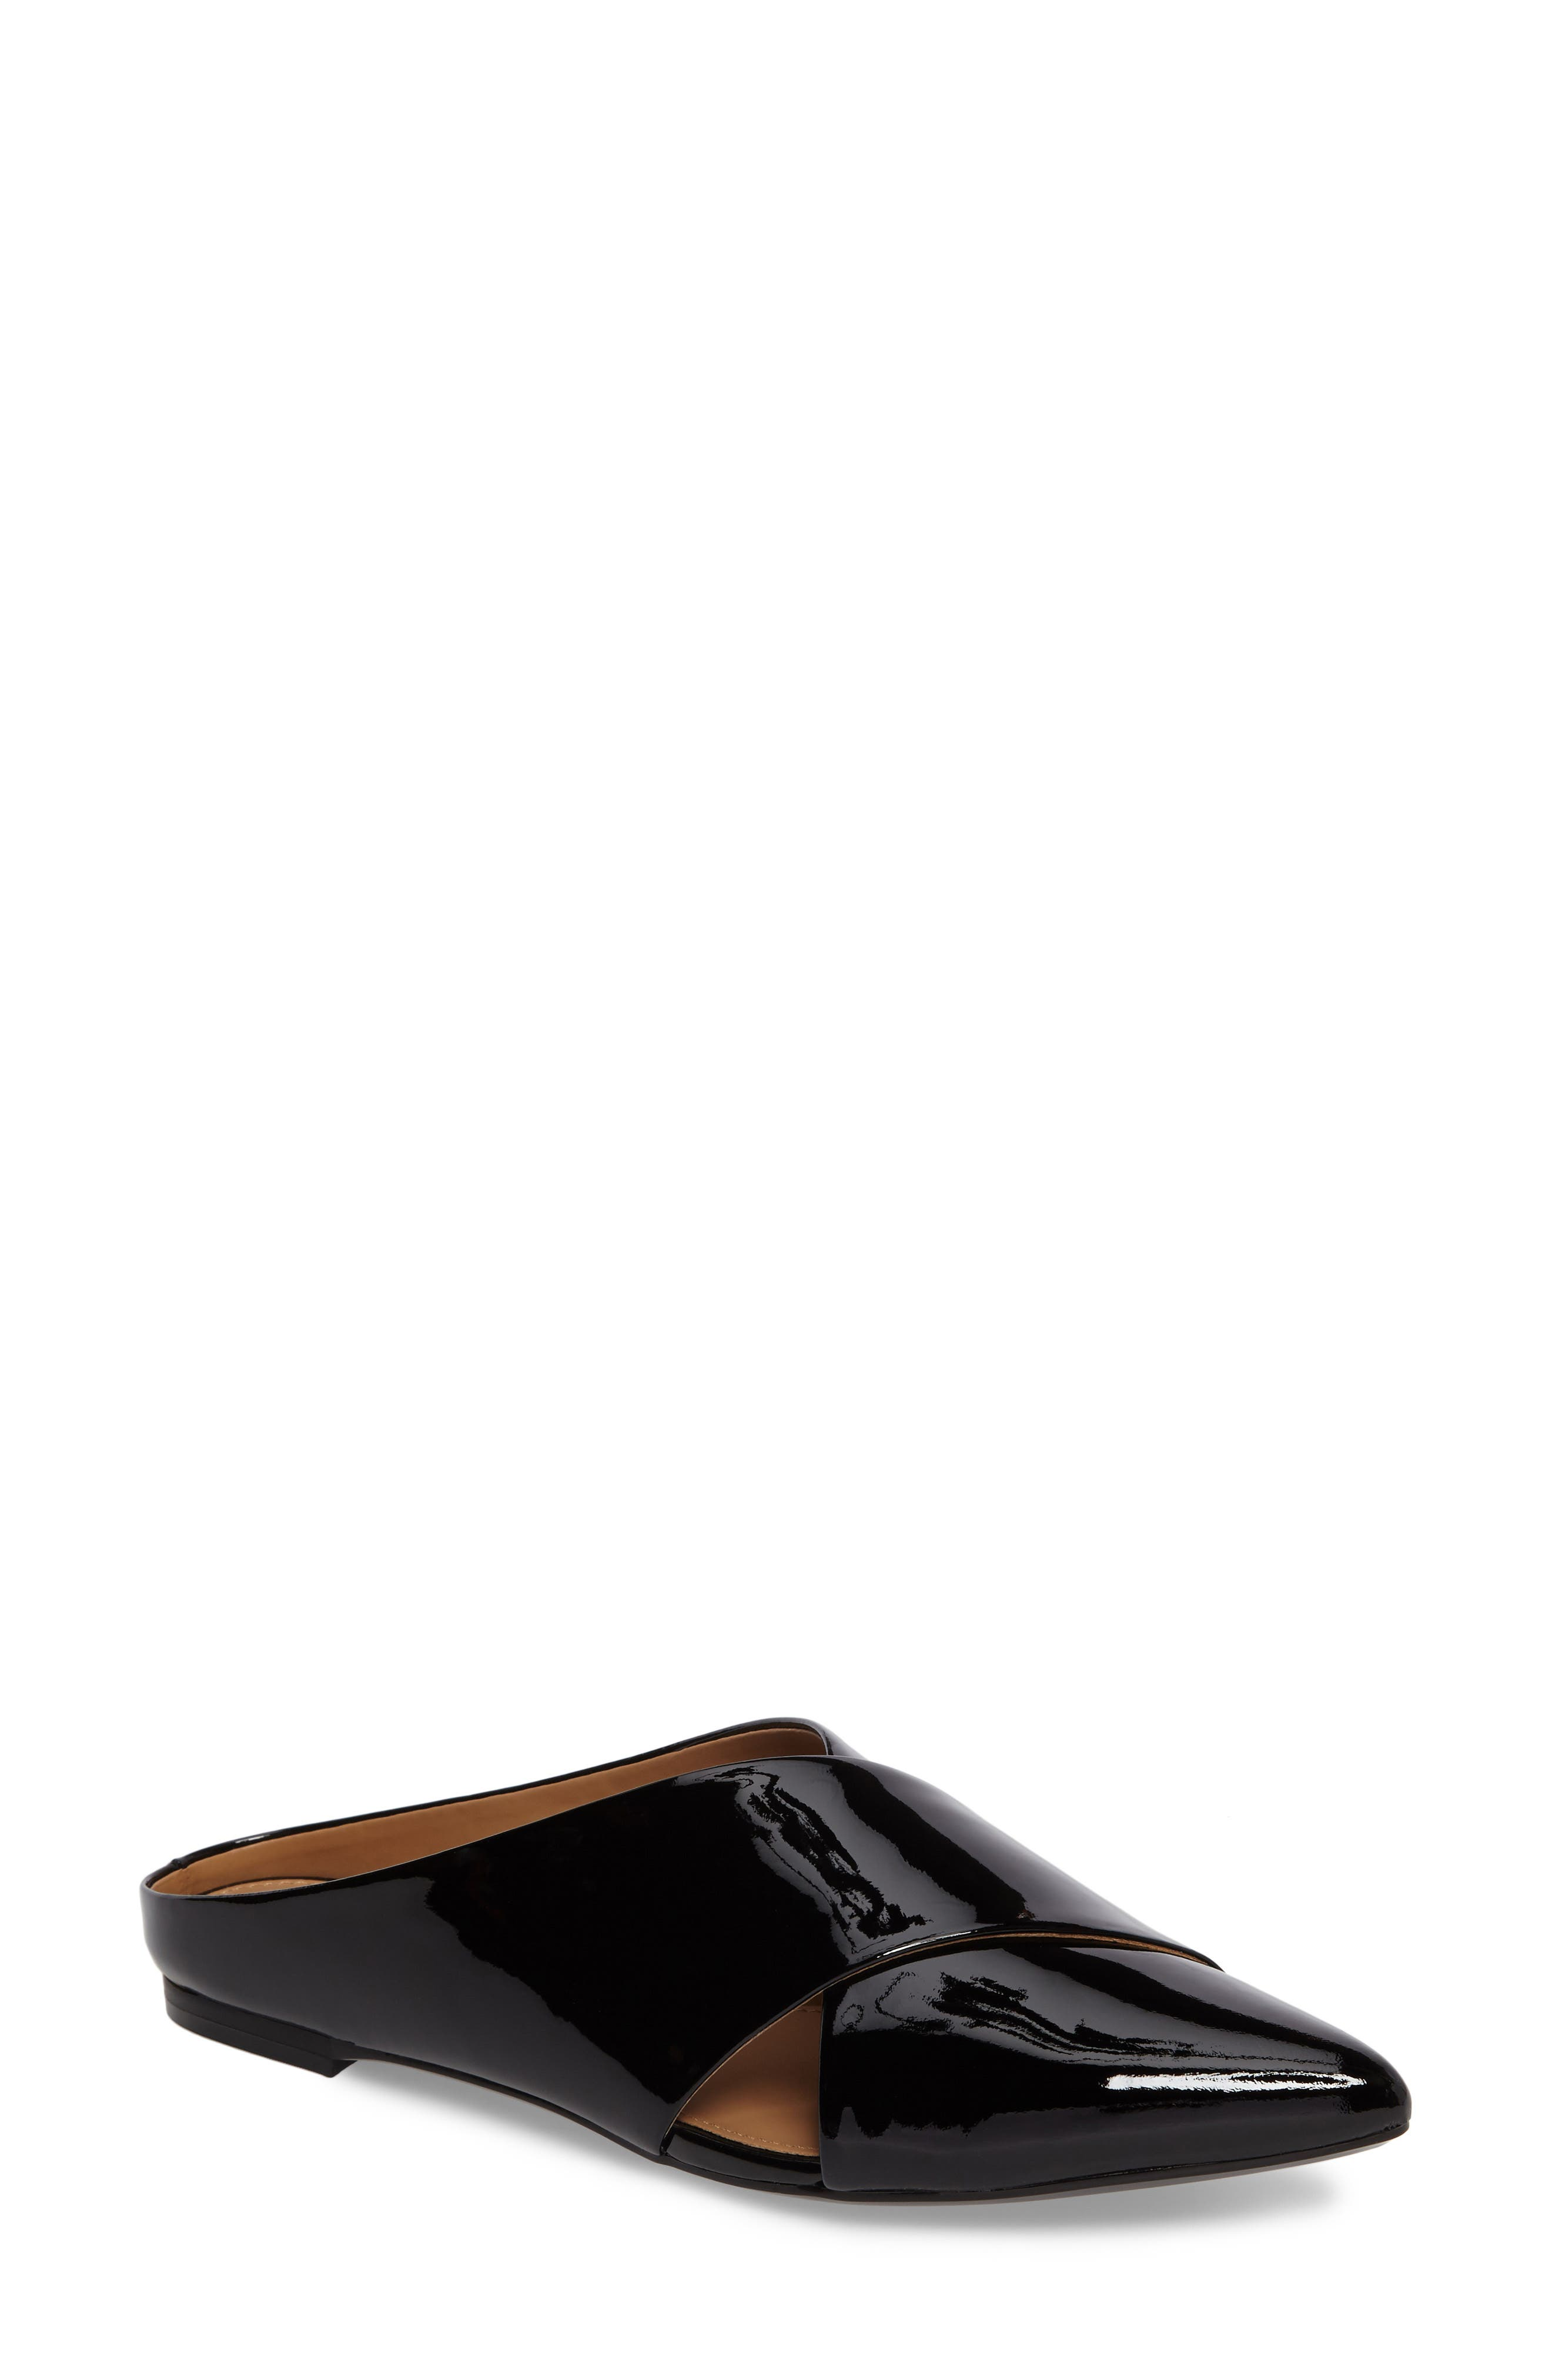 Gerda Cross Strap Mule,                         Main,                         color, Black Patent